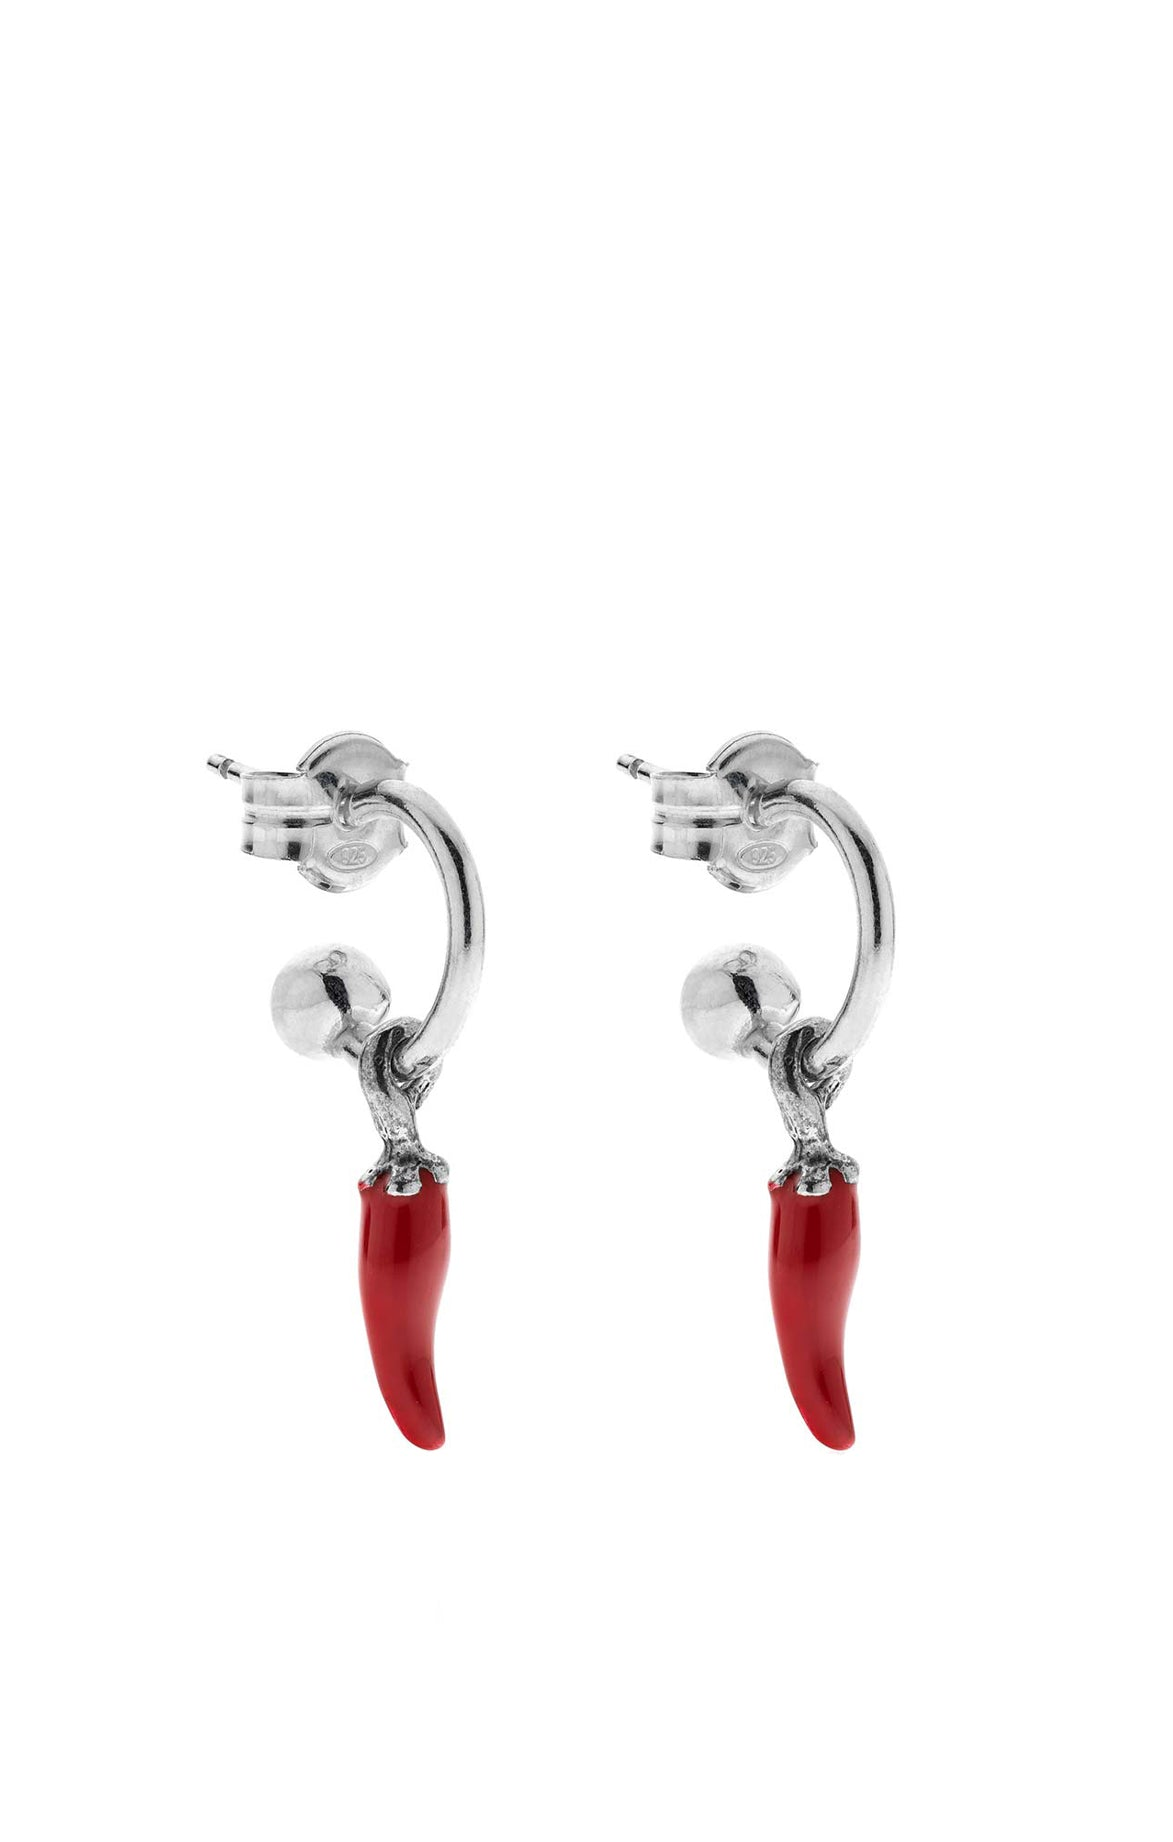 The Small Hoop Earrings with Mini Red Chili Pepper Charm